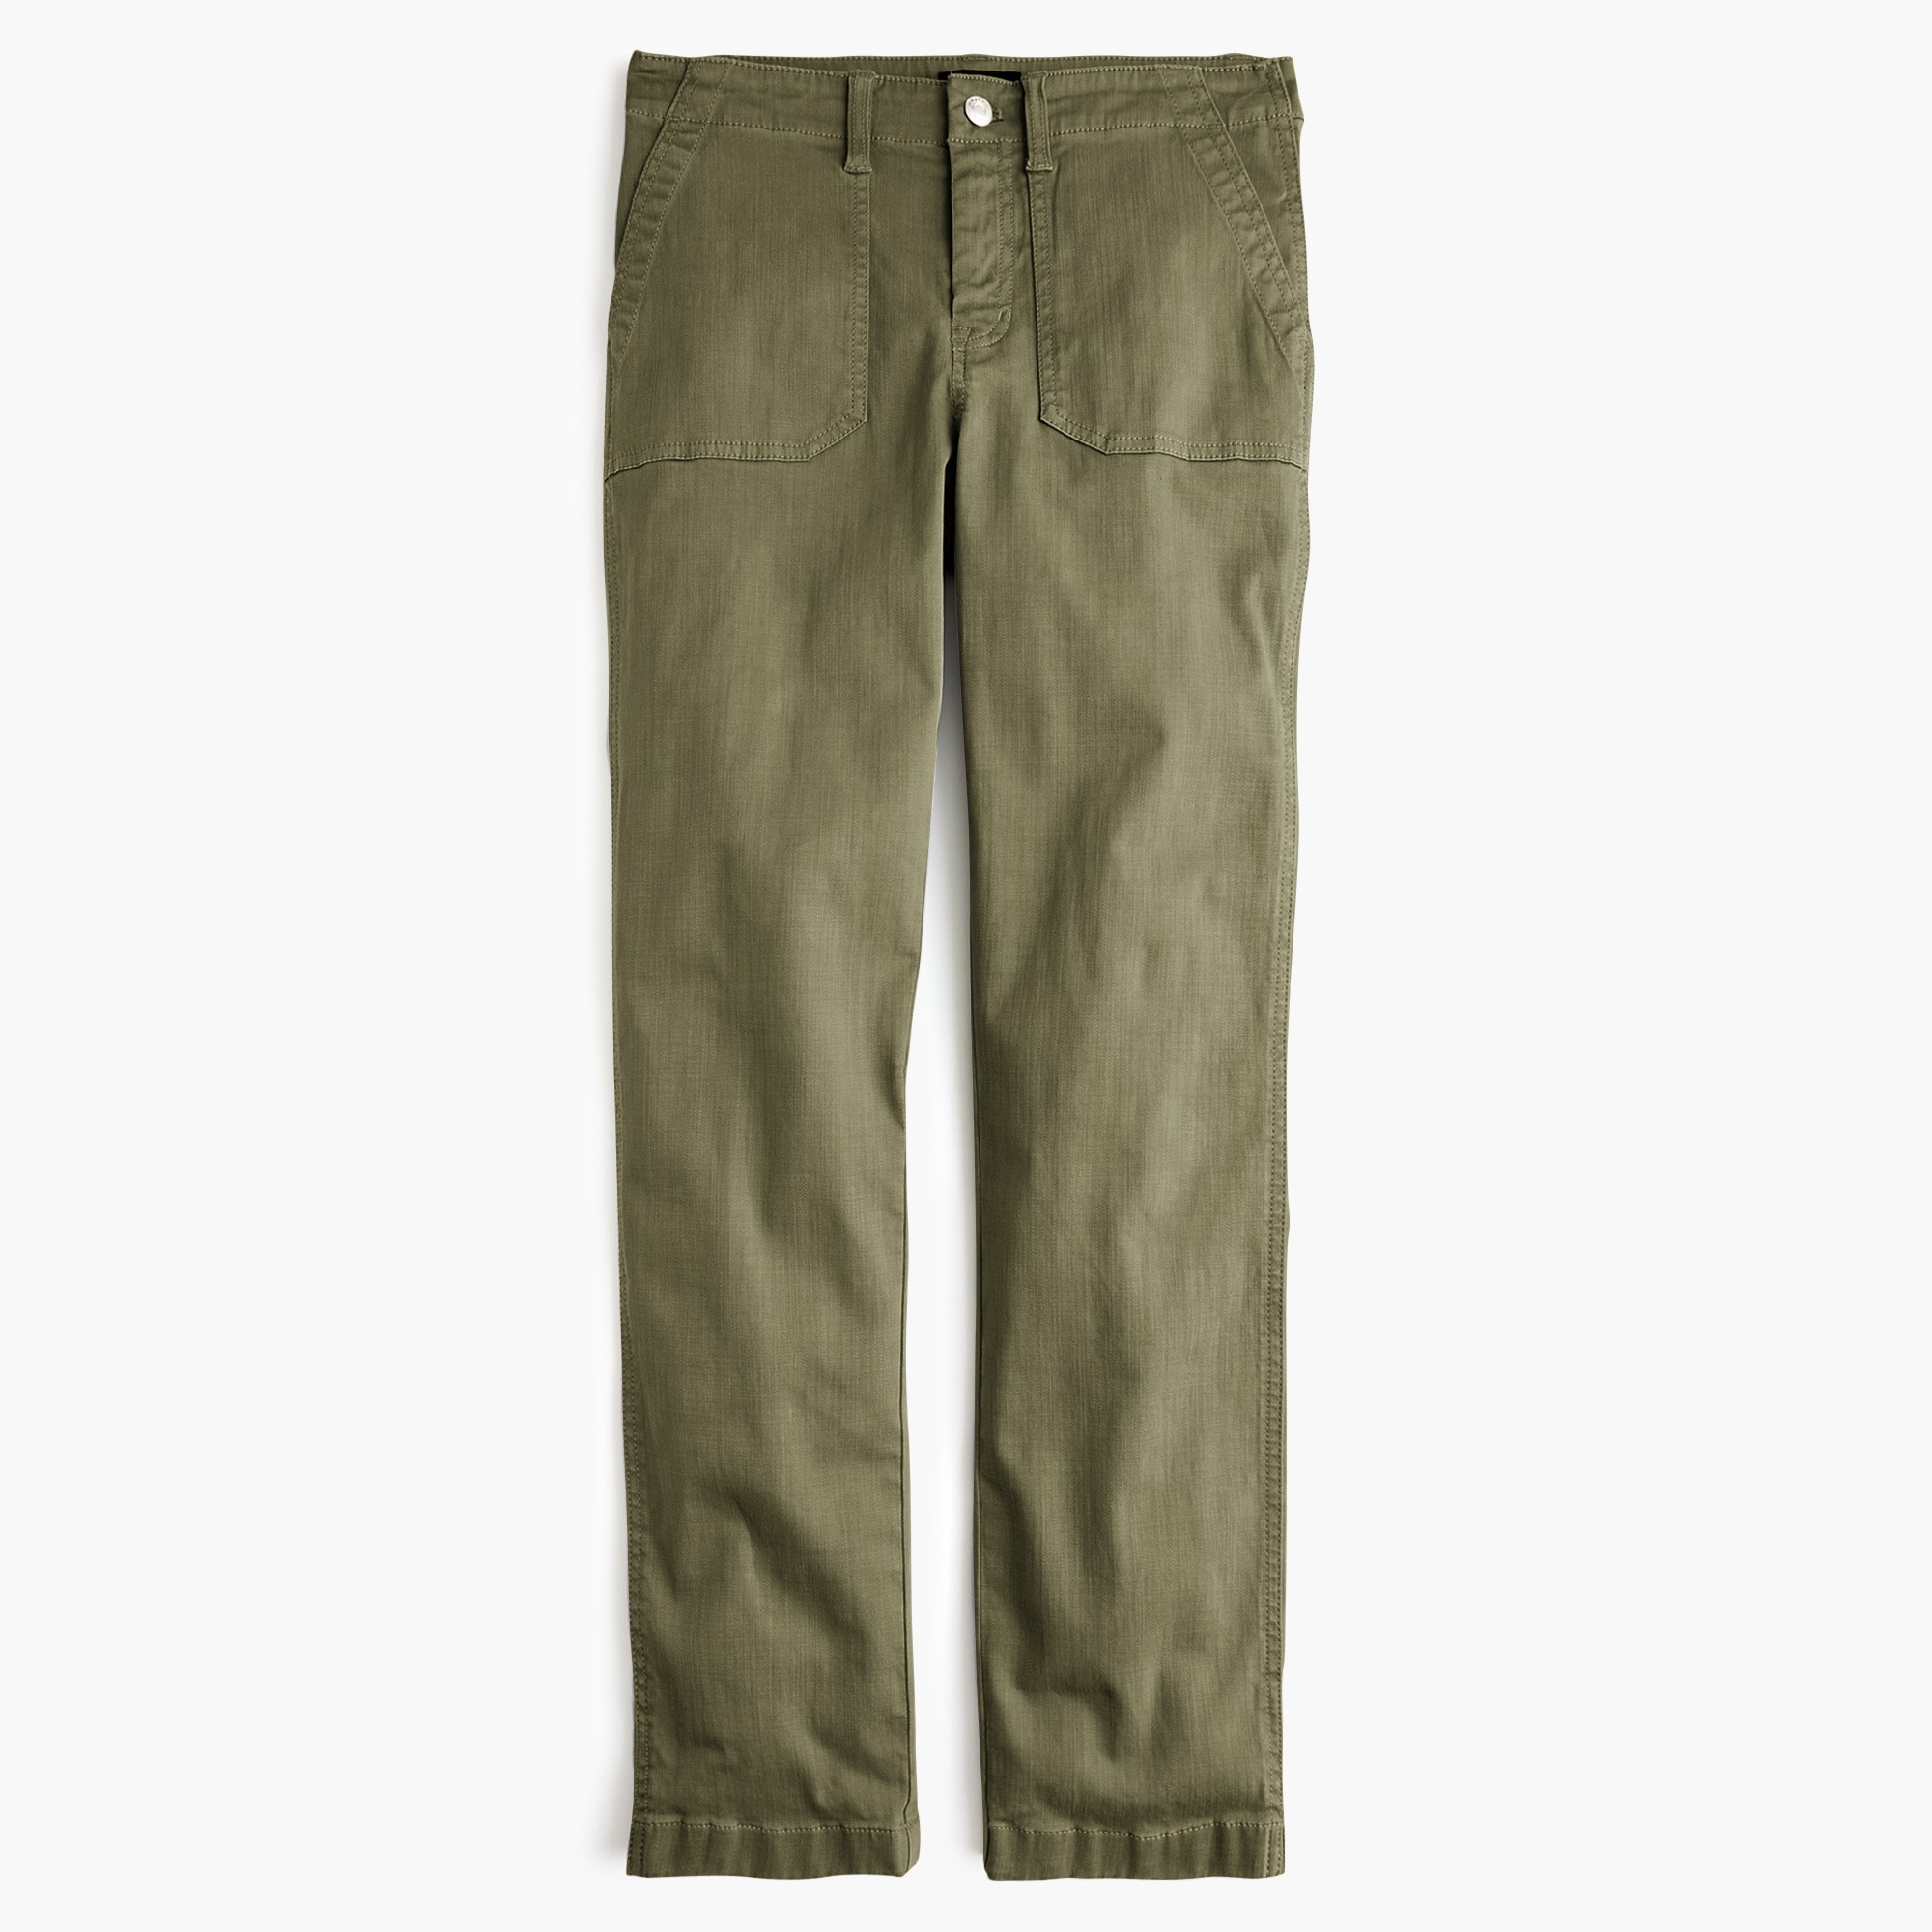 Image 2 for Vintage straight cargo pant in slub sateen